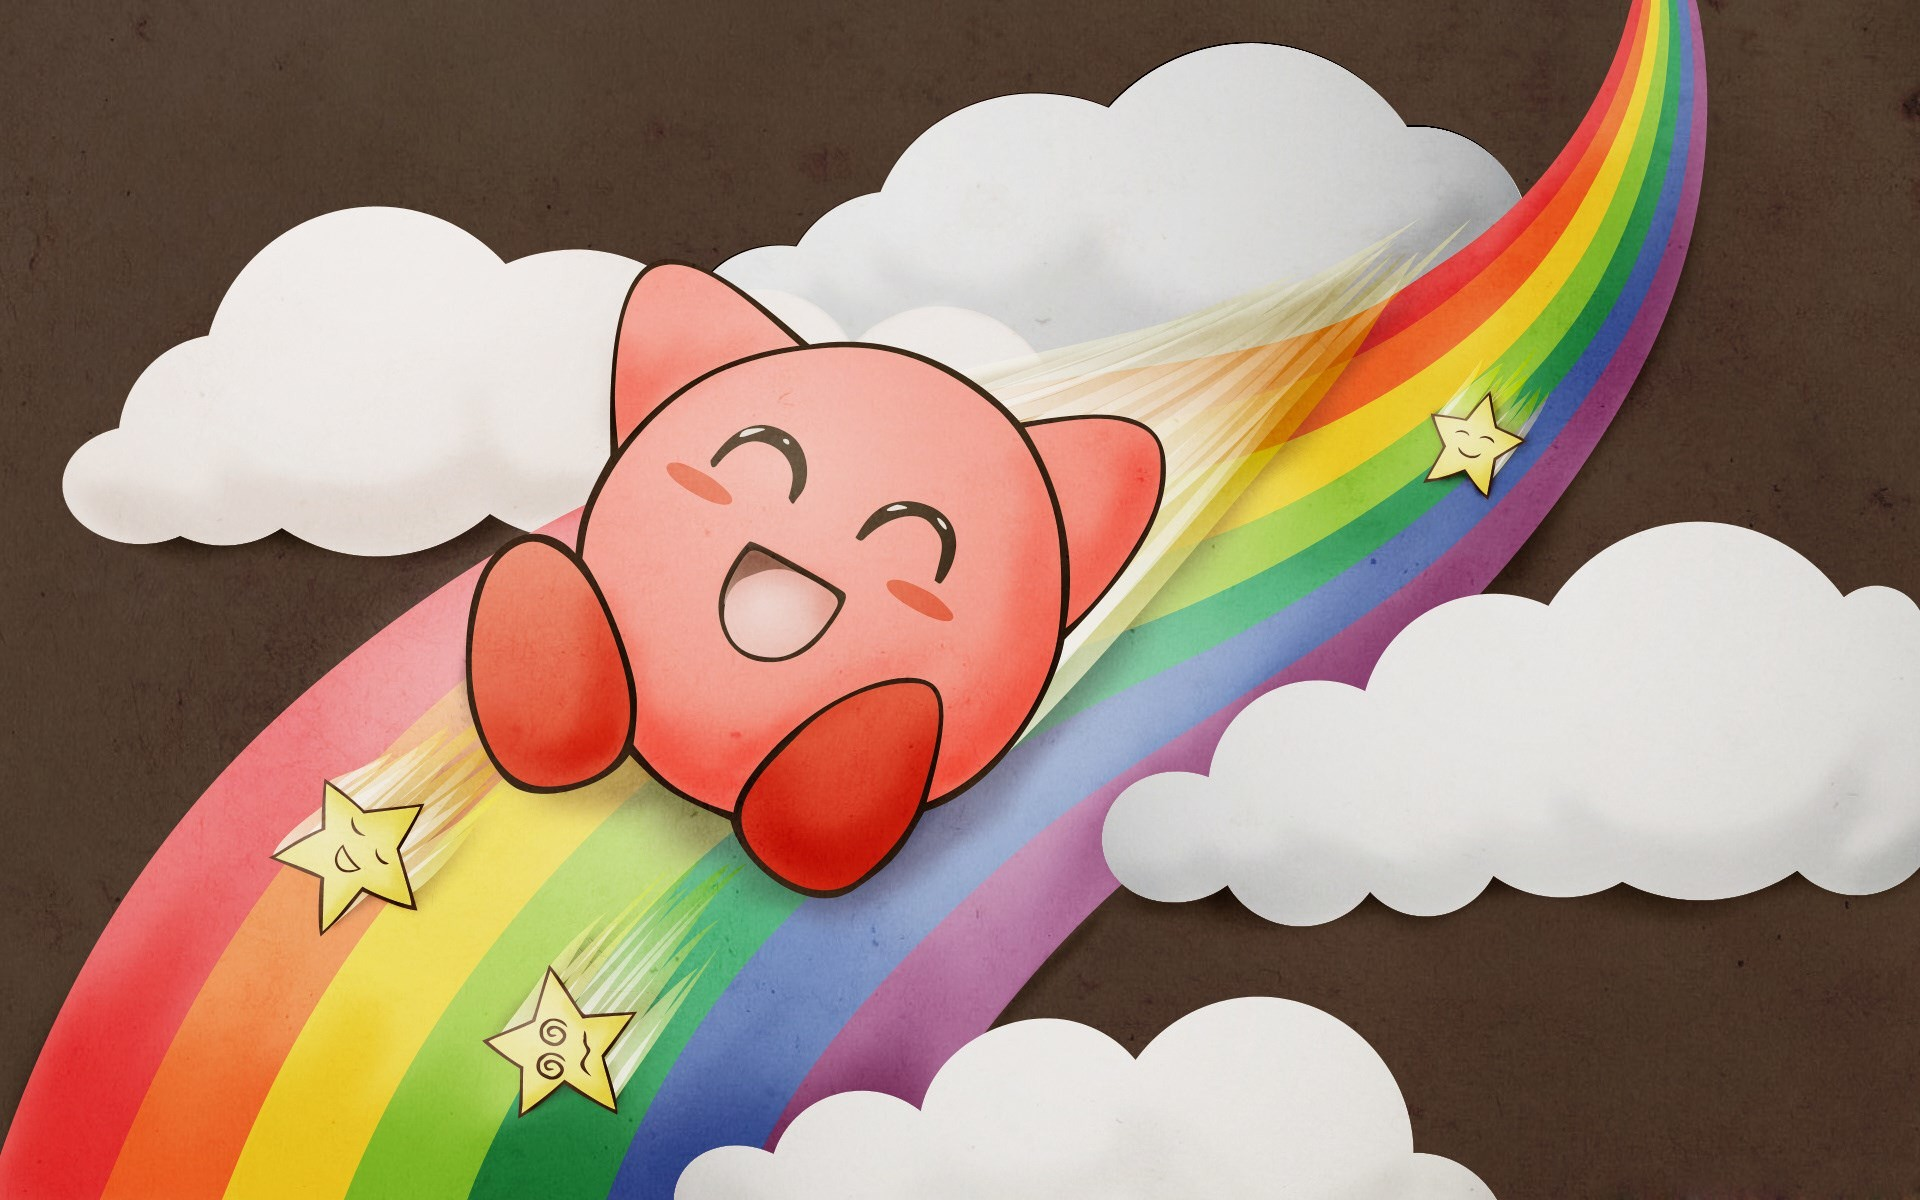 free hd kirby wallpapers pictures